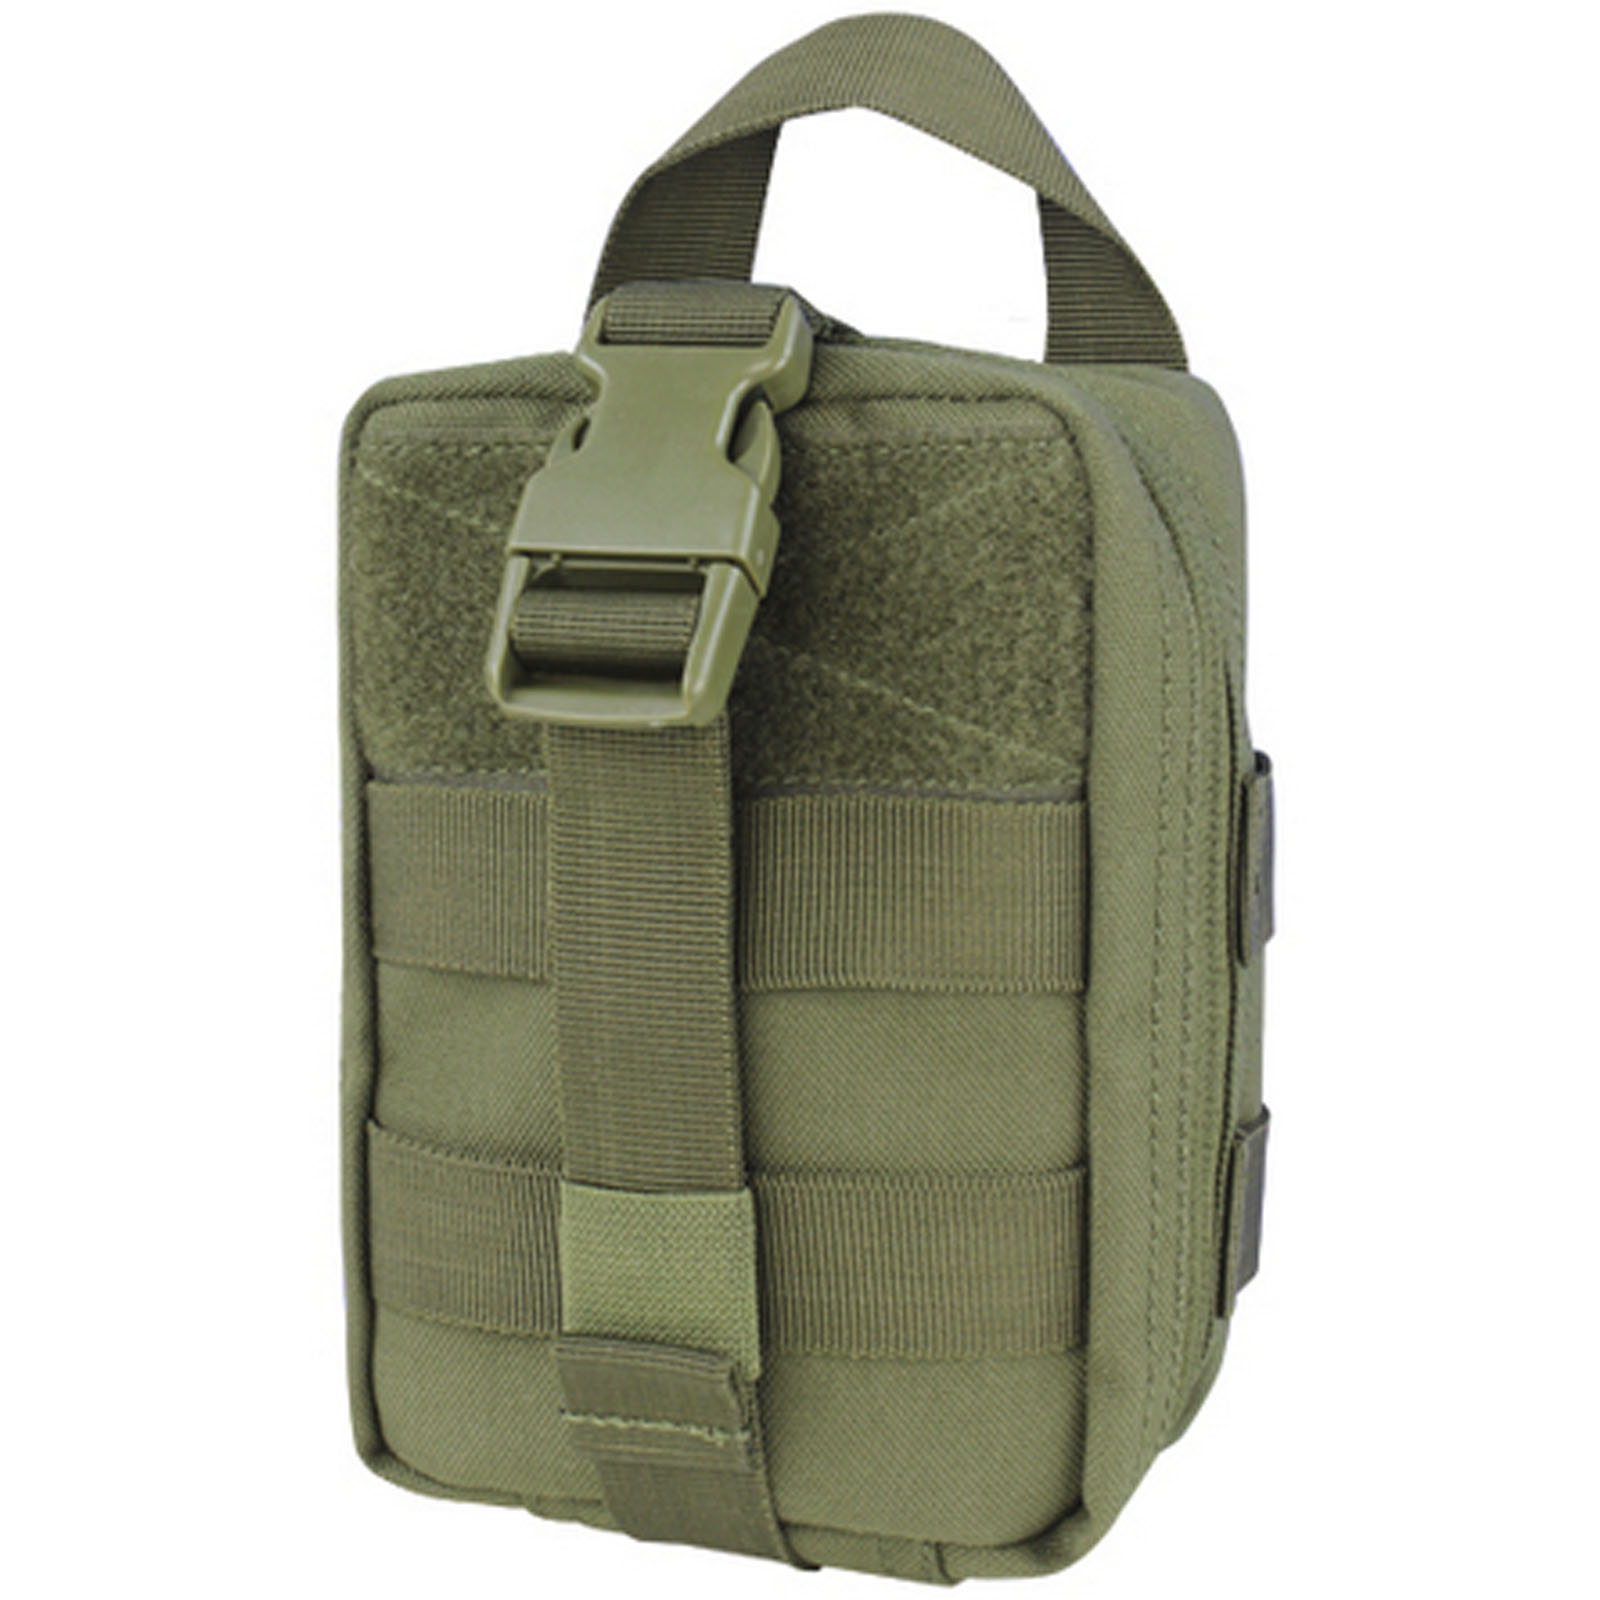 Condor #191031 Tactical Rip-Away MOLLE EMT Lite Pouch - OD Green